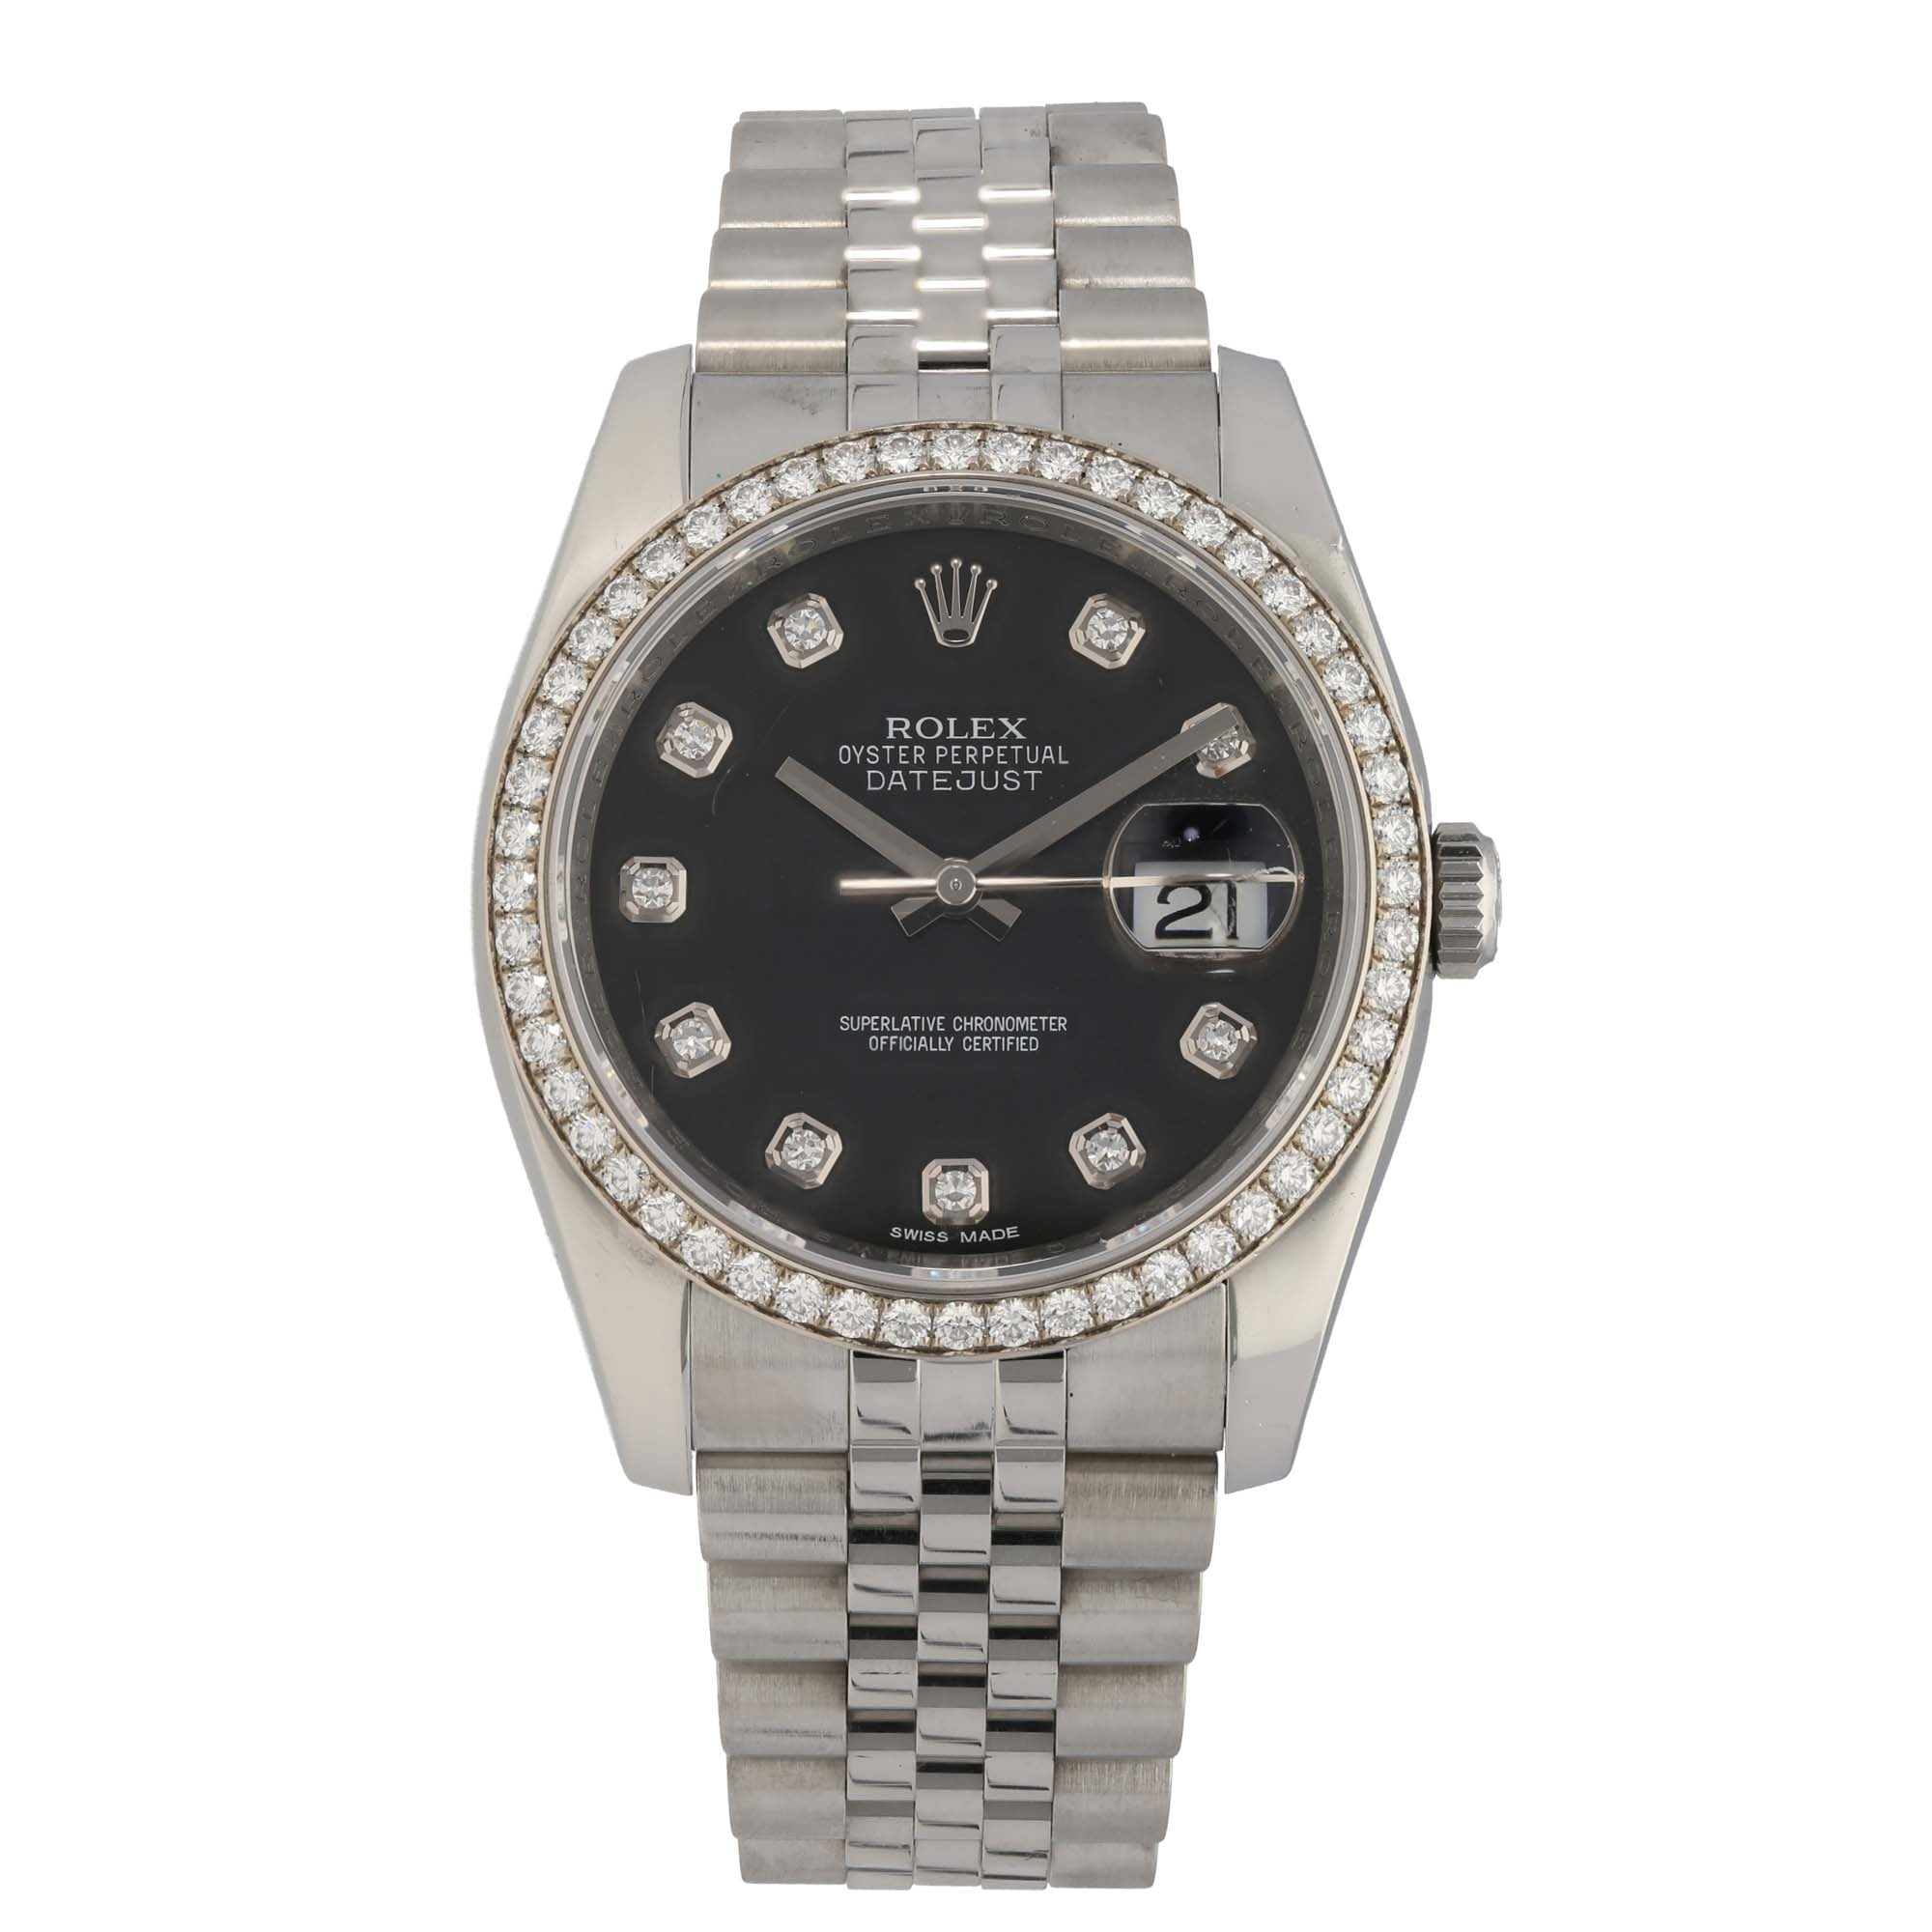 Rolex Datejust 116244 36mm Stainless Steel Mens Watch